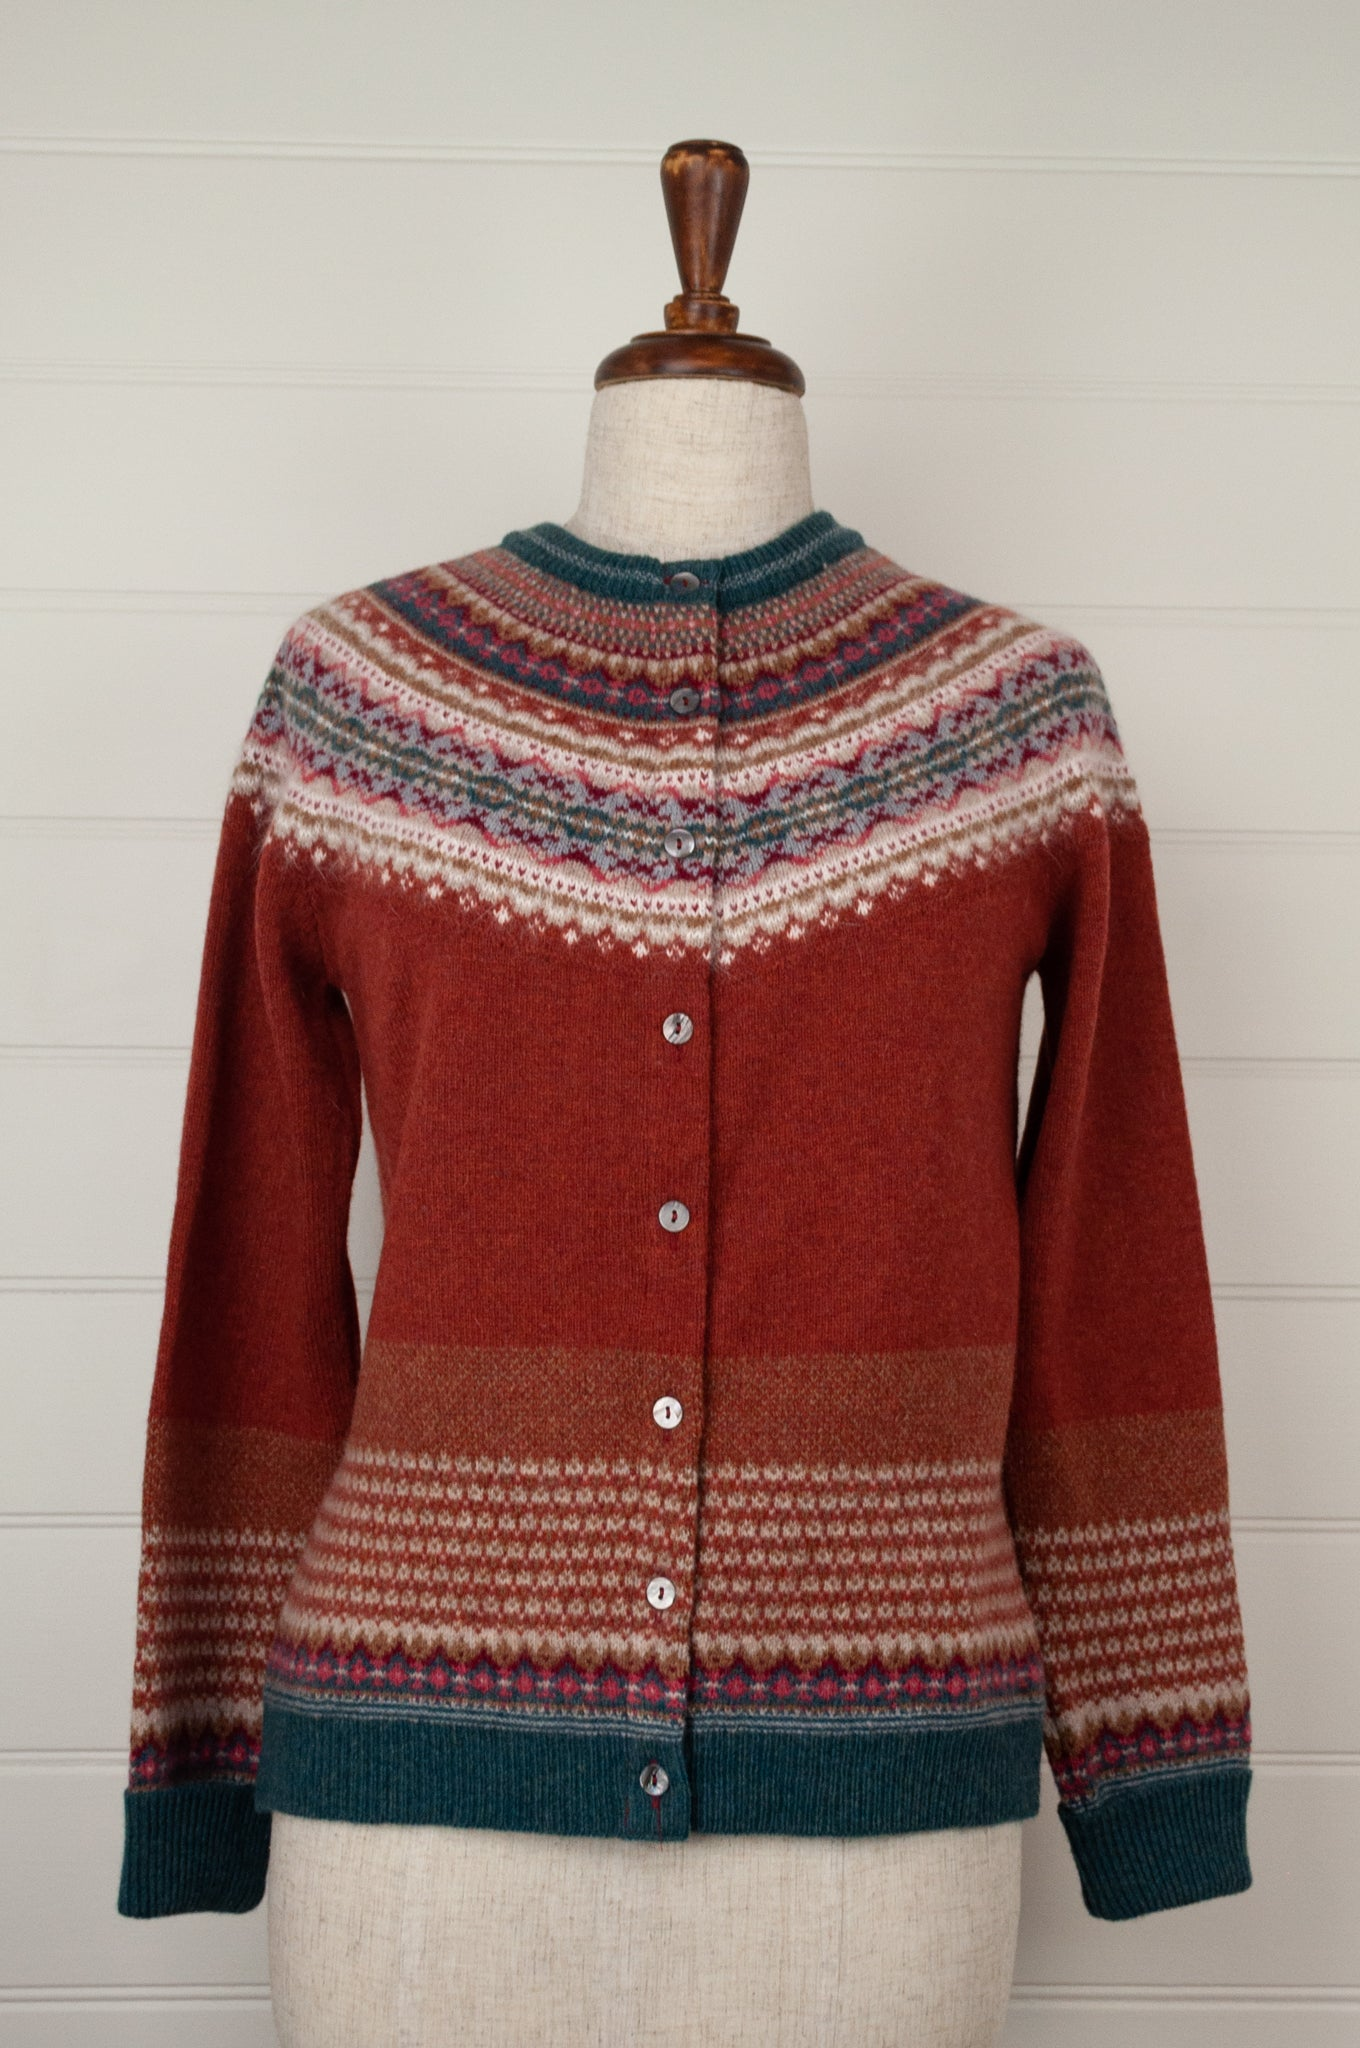 Made in Scotland, Eribé pure wool fairisle cardigan in Russet, rich red brown with patterned yoke and trim in shades of teal, toffee, burgundy, light grey and ecru.